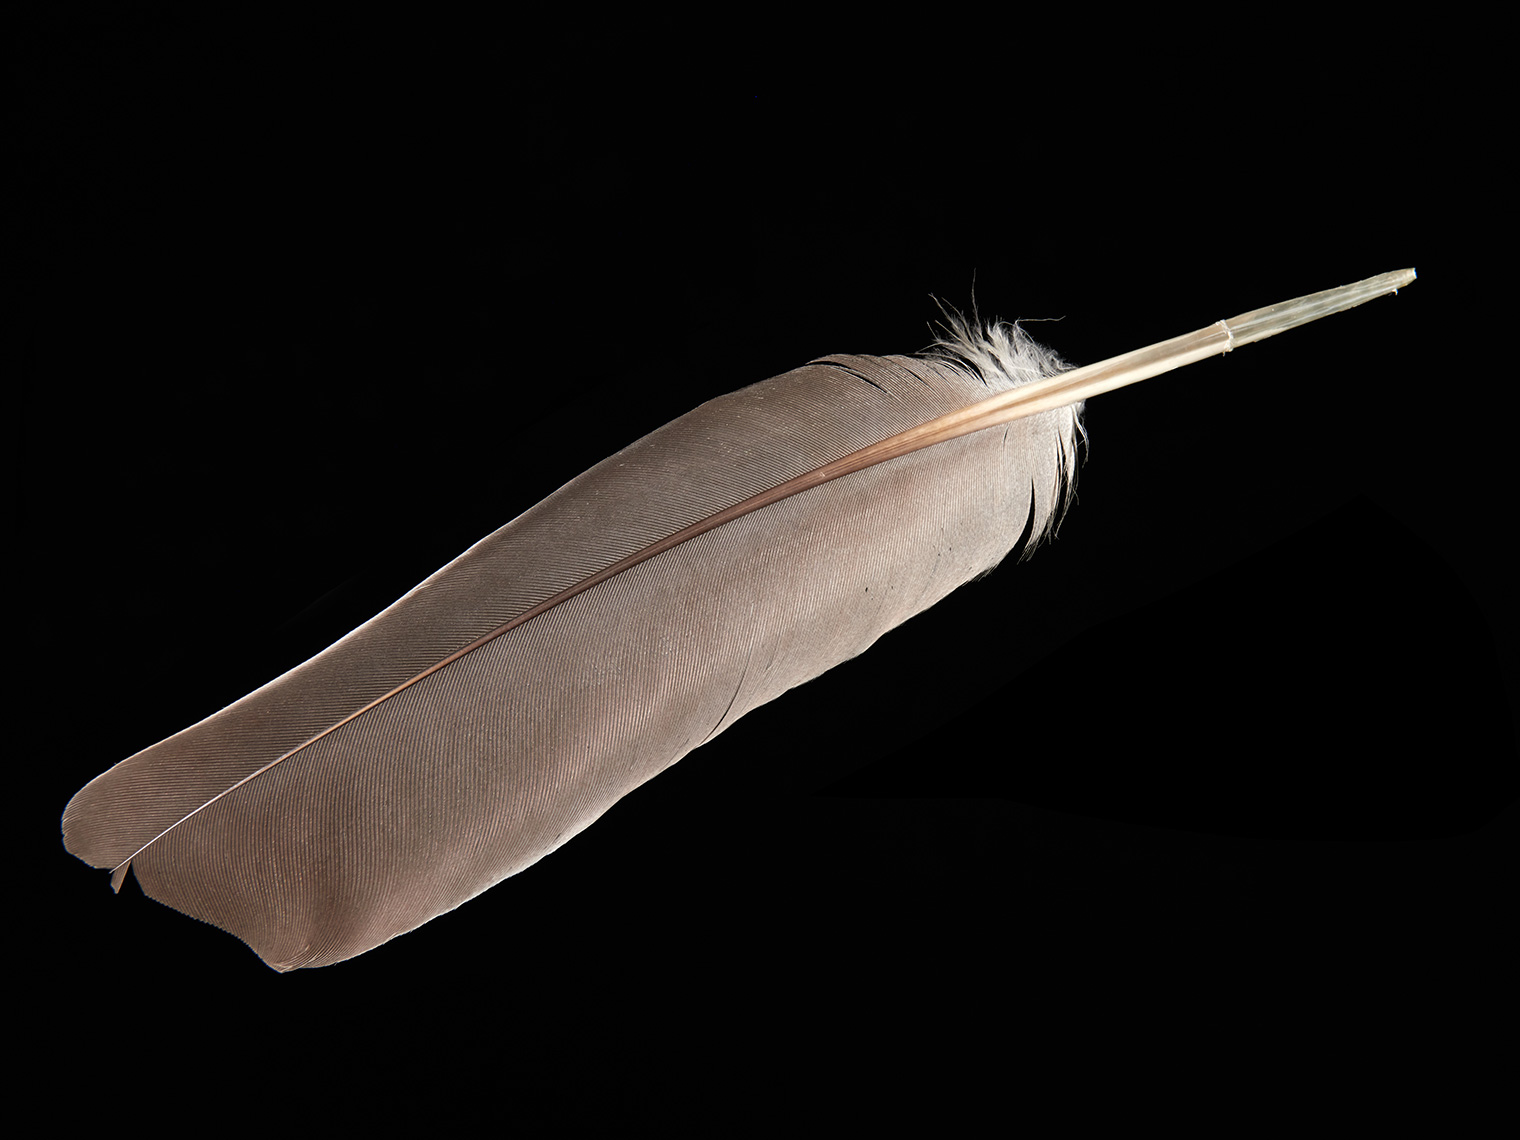 feather-18298-web